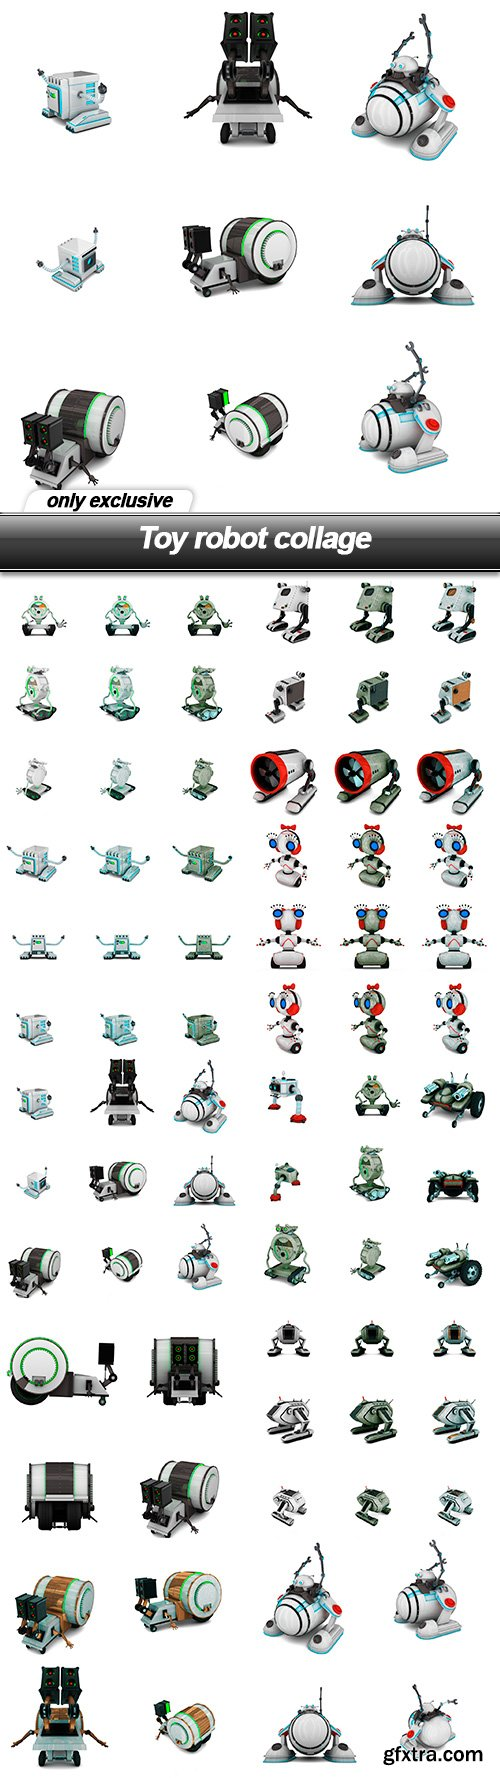 Toy robot collage - 10 UHQ JPEG